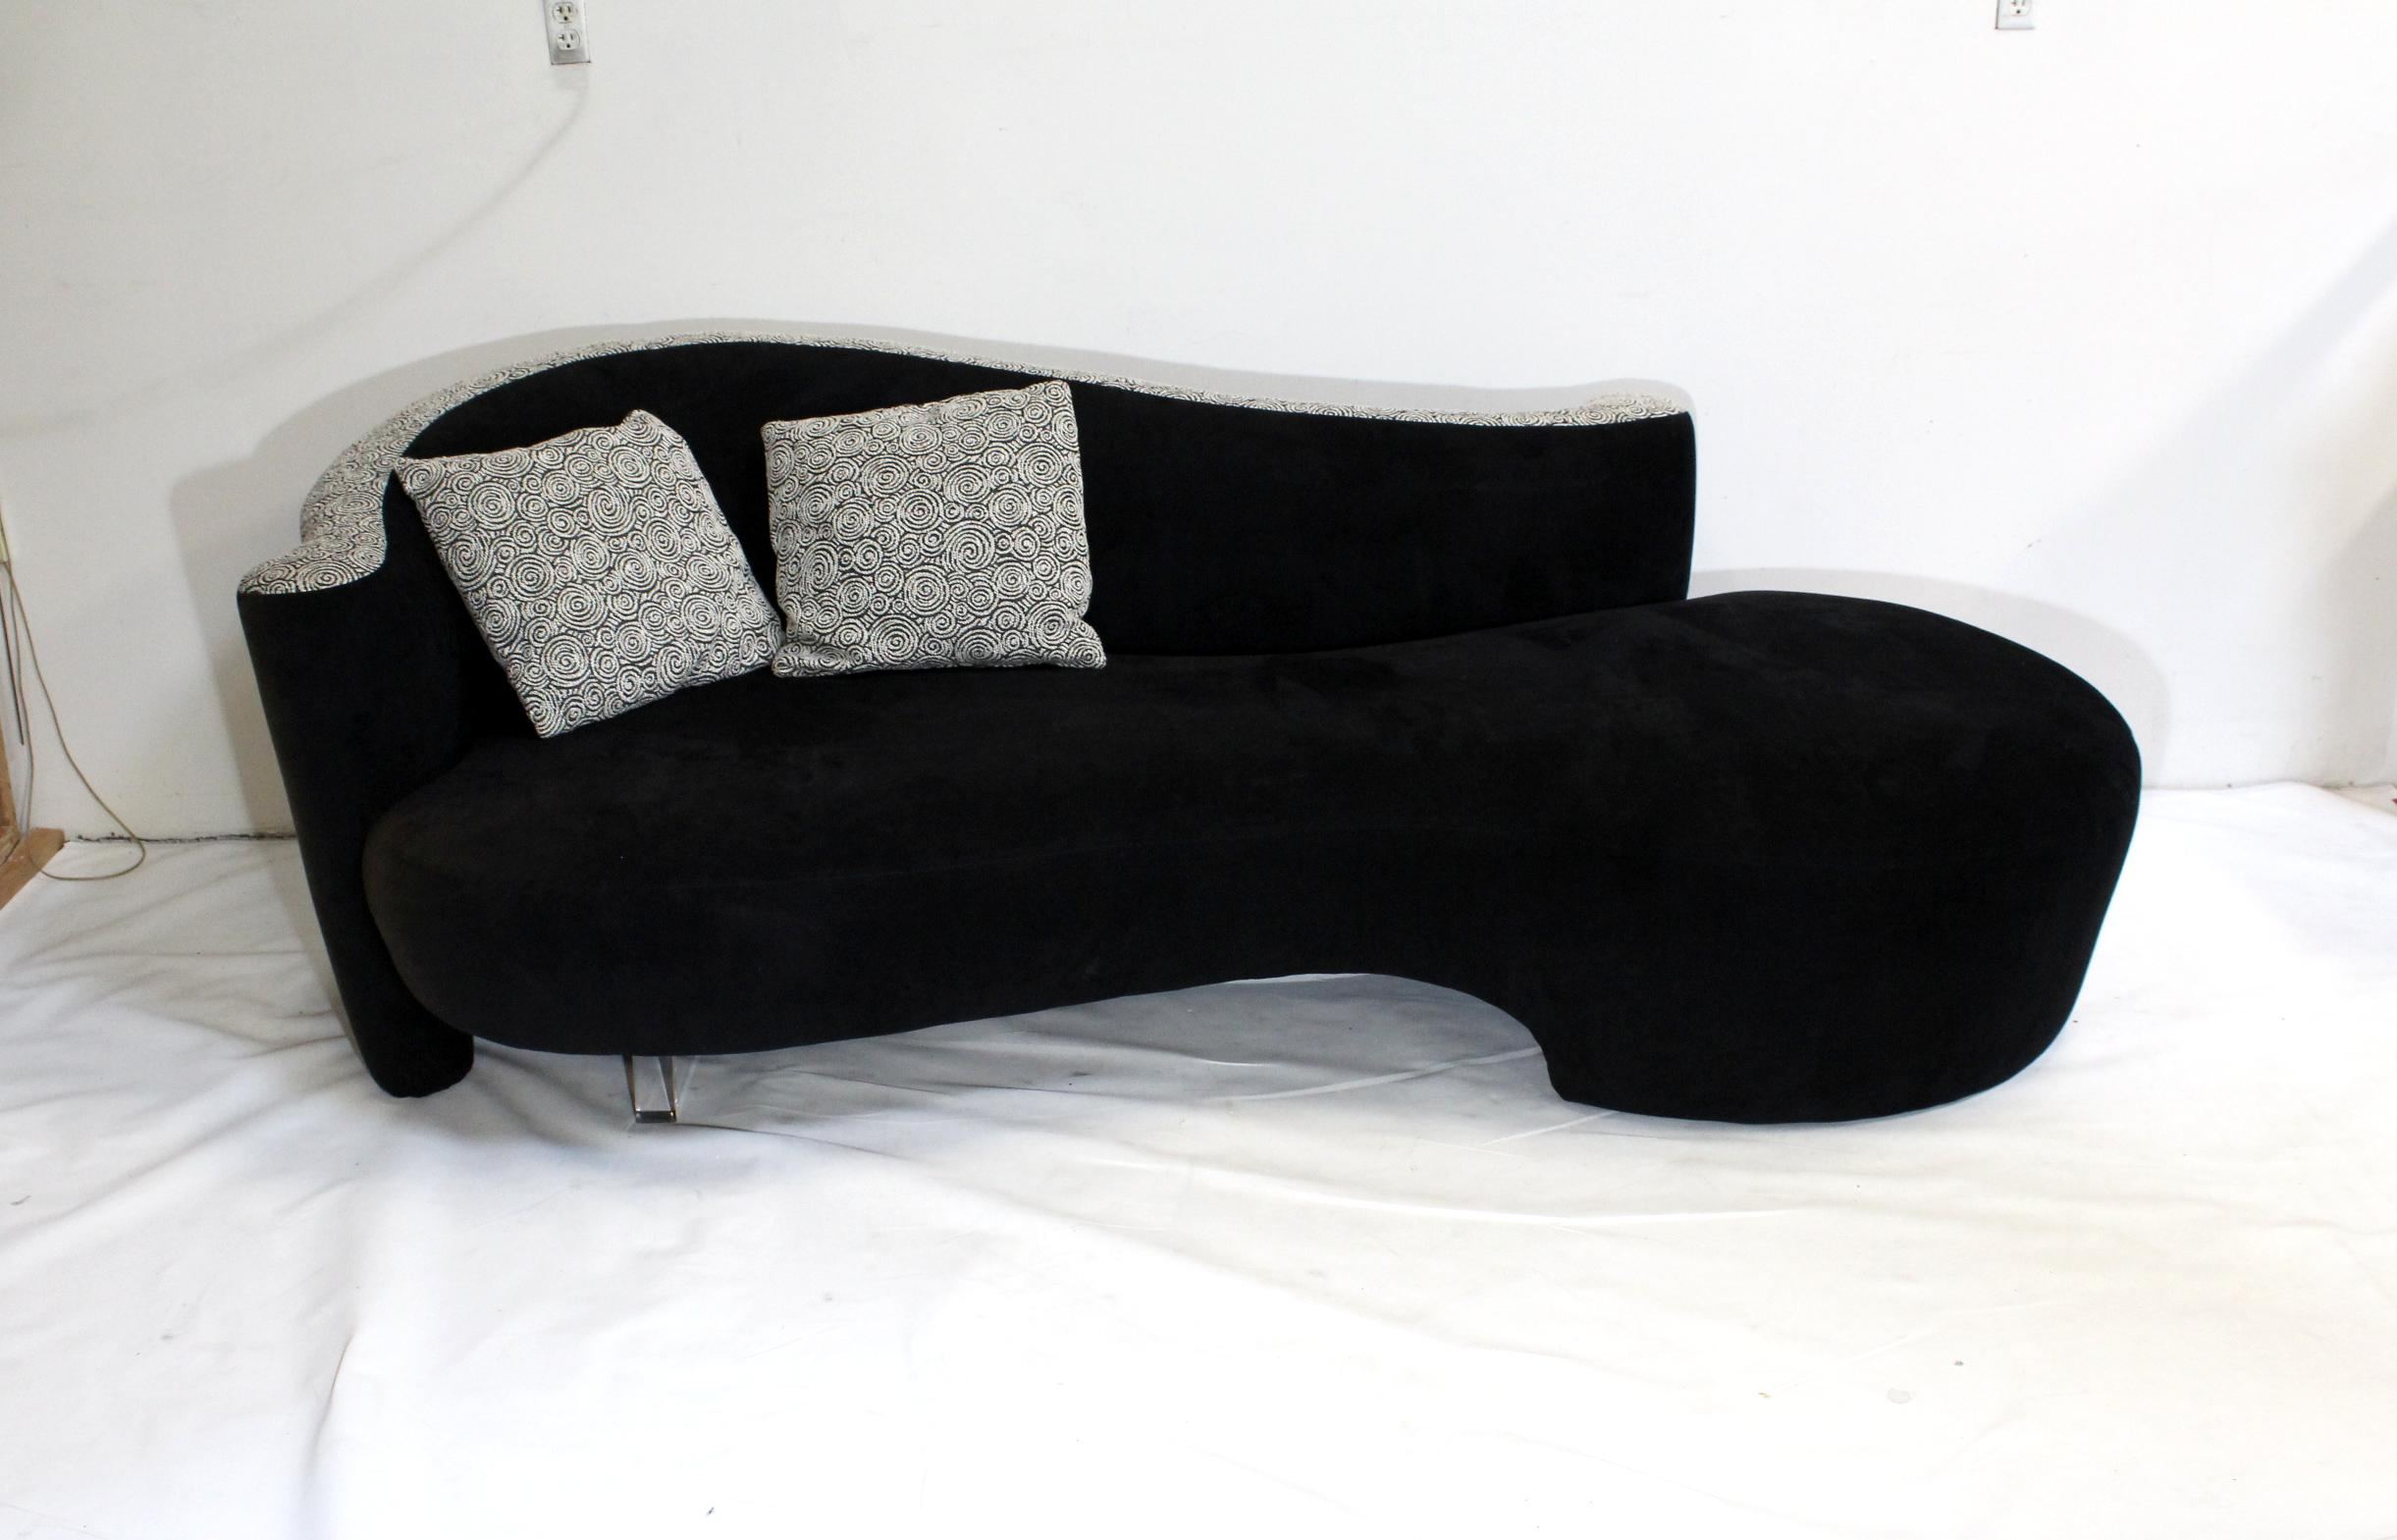 Vladimir Kagan For Weiman Serpentine Sofas With Lucite Legs   A Pair    Image 3 Of